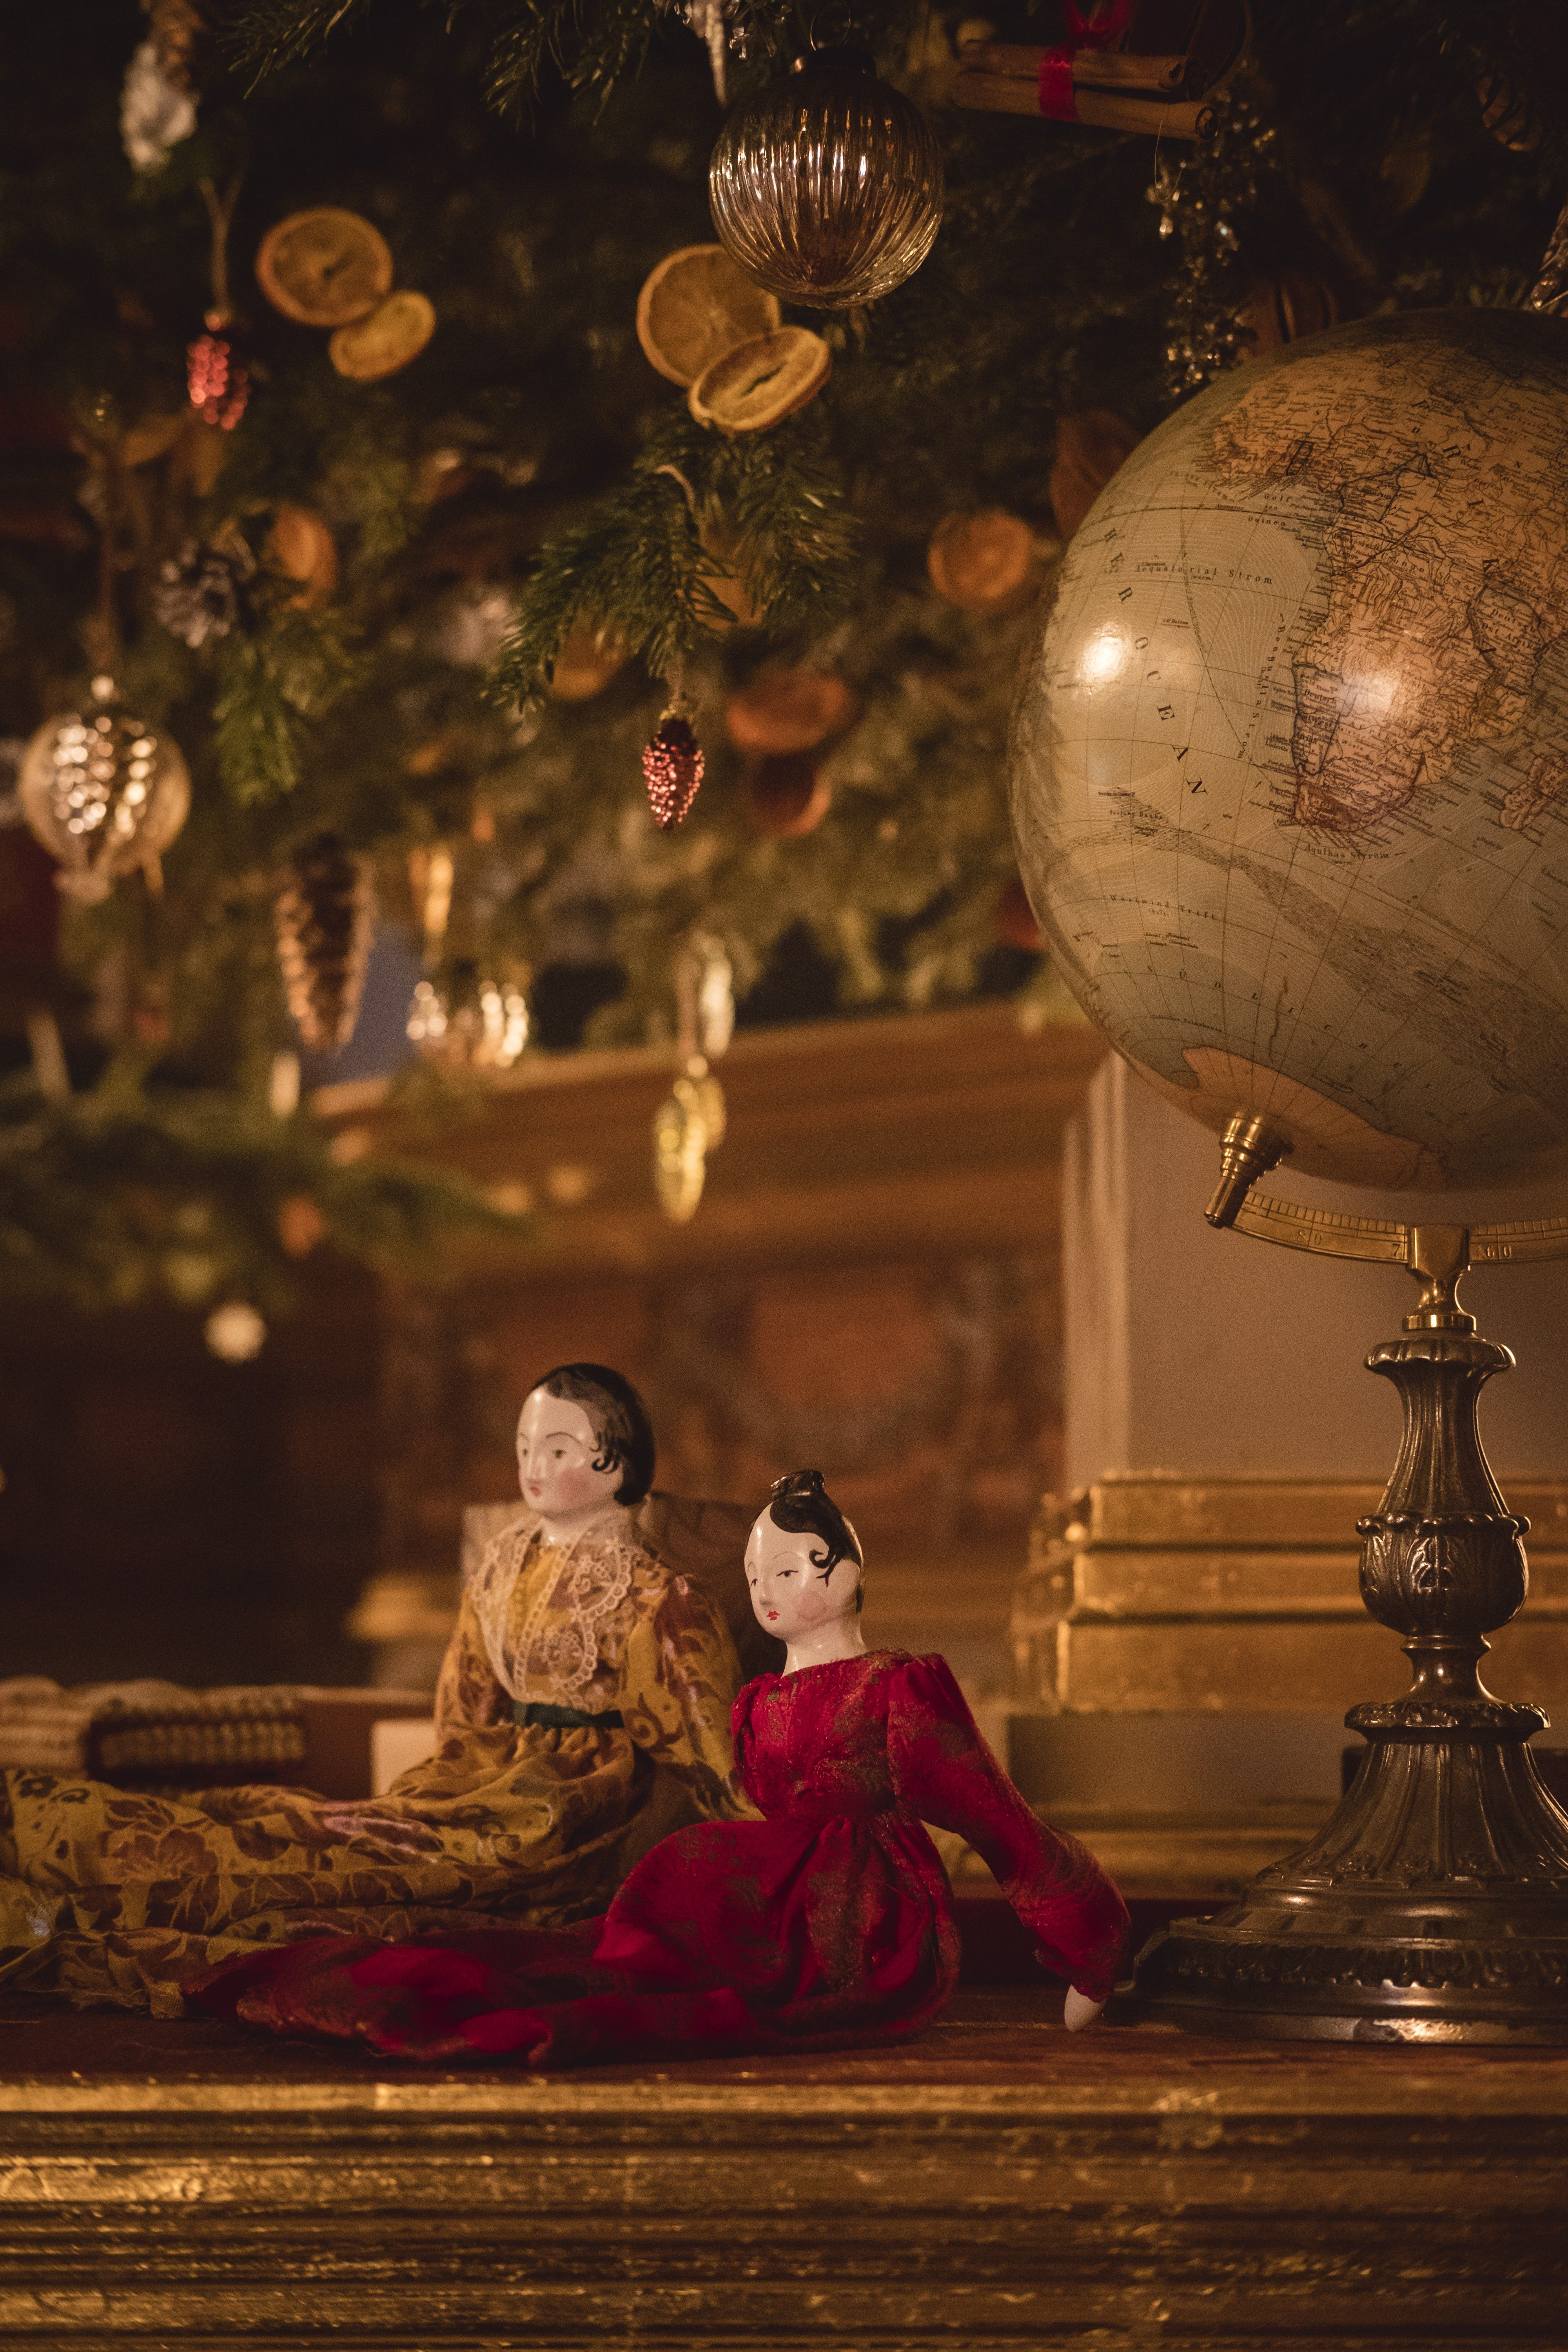 Promotional Still From The Victoria 2017 Christmas Special Comfort And Joy Old World Christmas Ornaments Old World Christmas Old Fashioned Christmas